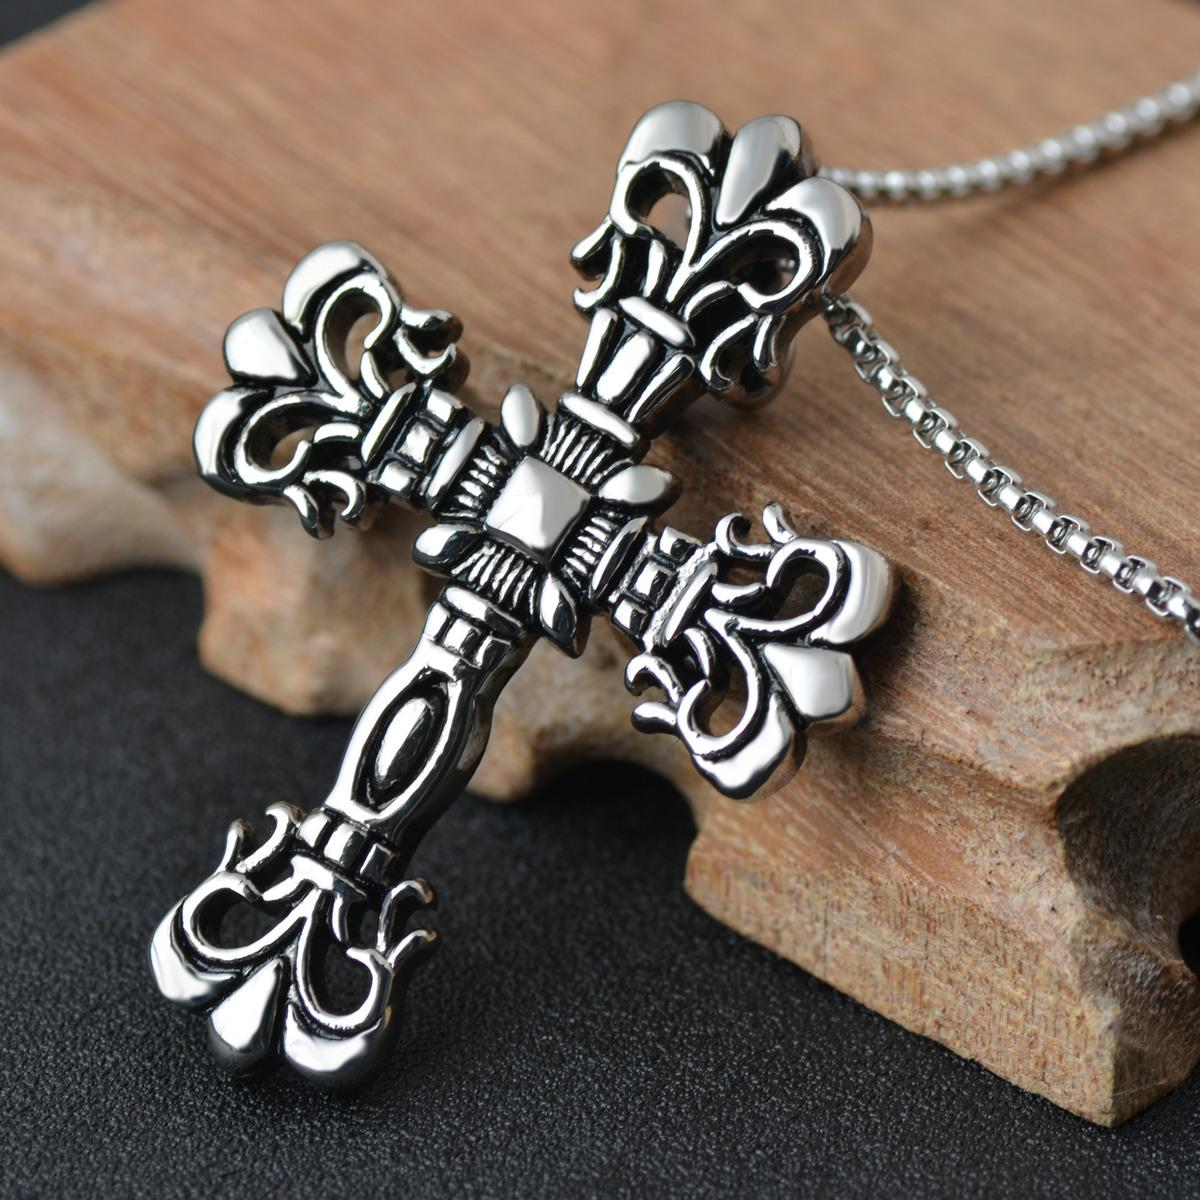 Stainless steel ornaments - Pendeloque Cut Stainless Steel Ornaments Casting Personality Restore Ancient Ways Man Necklace Cross Foreign Trade Ornaments